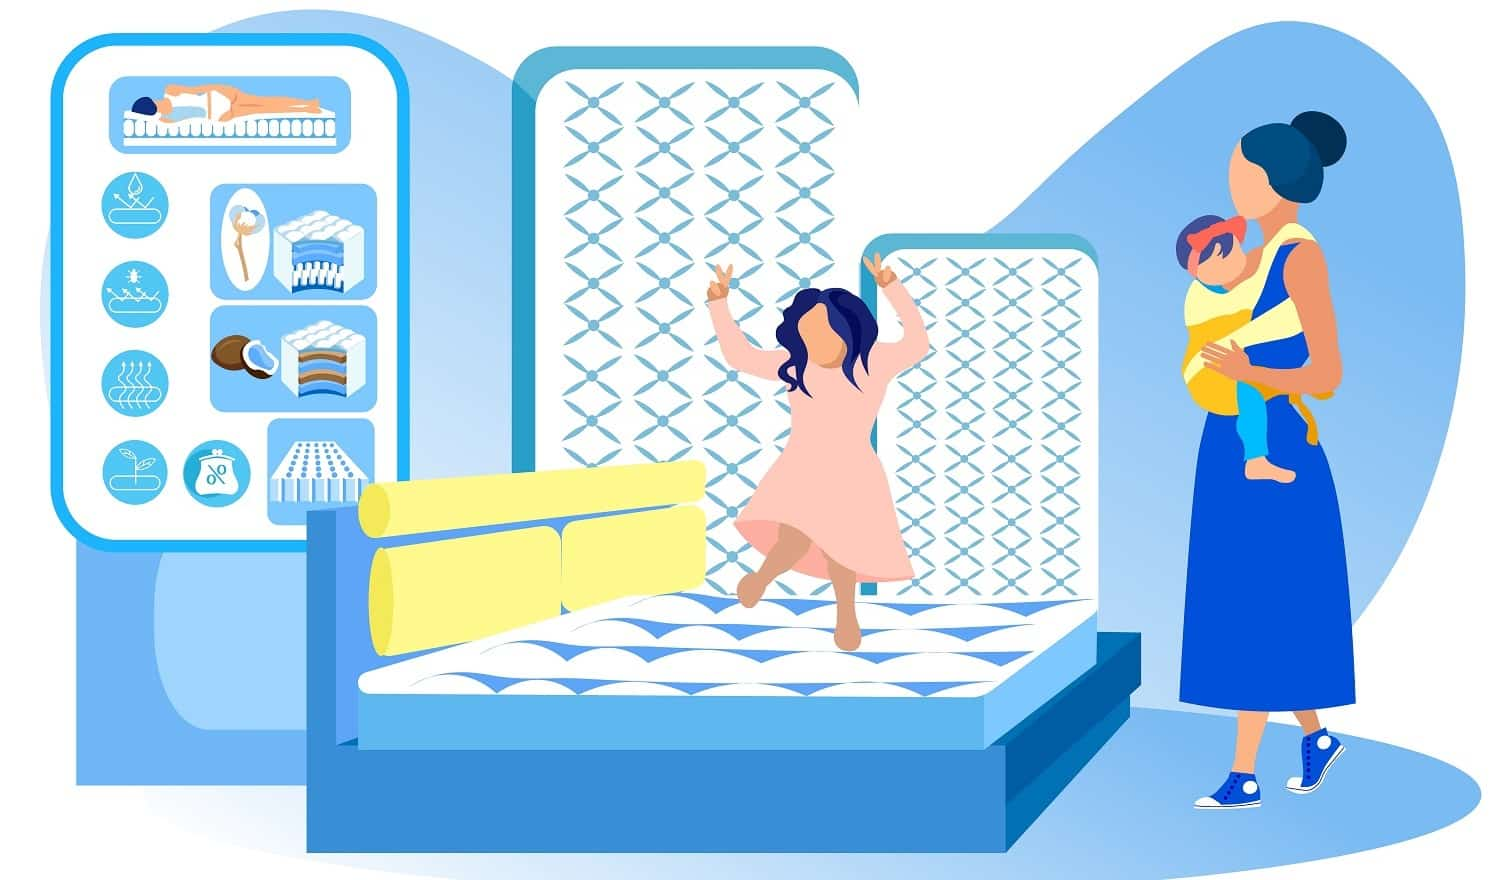 Young Mother with Two Little Girls, Toddler and Sling Baby, Looking about Mattress Store. Kid, Jumping on Bed in Showroom. Infomercial Graphics about Orthopedic Cotton and Coir Fiber Filling Samples.